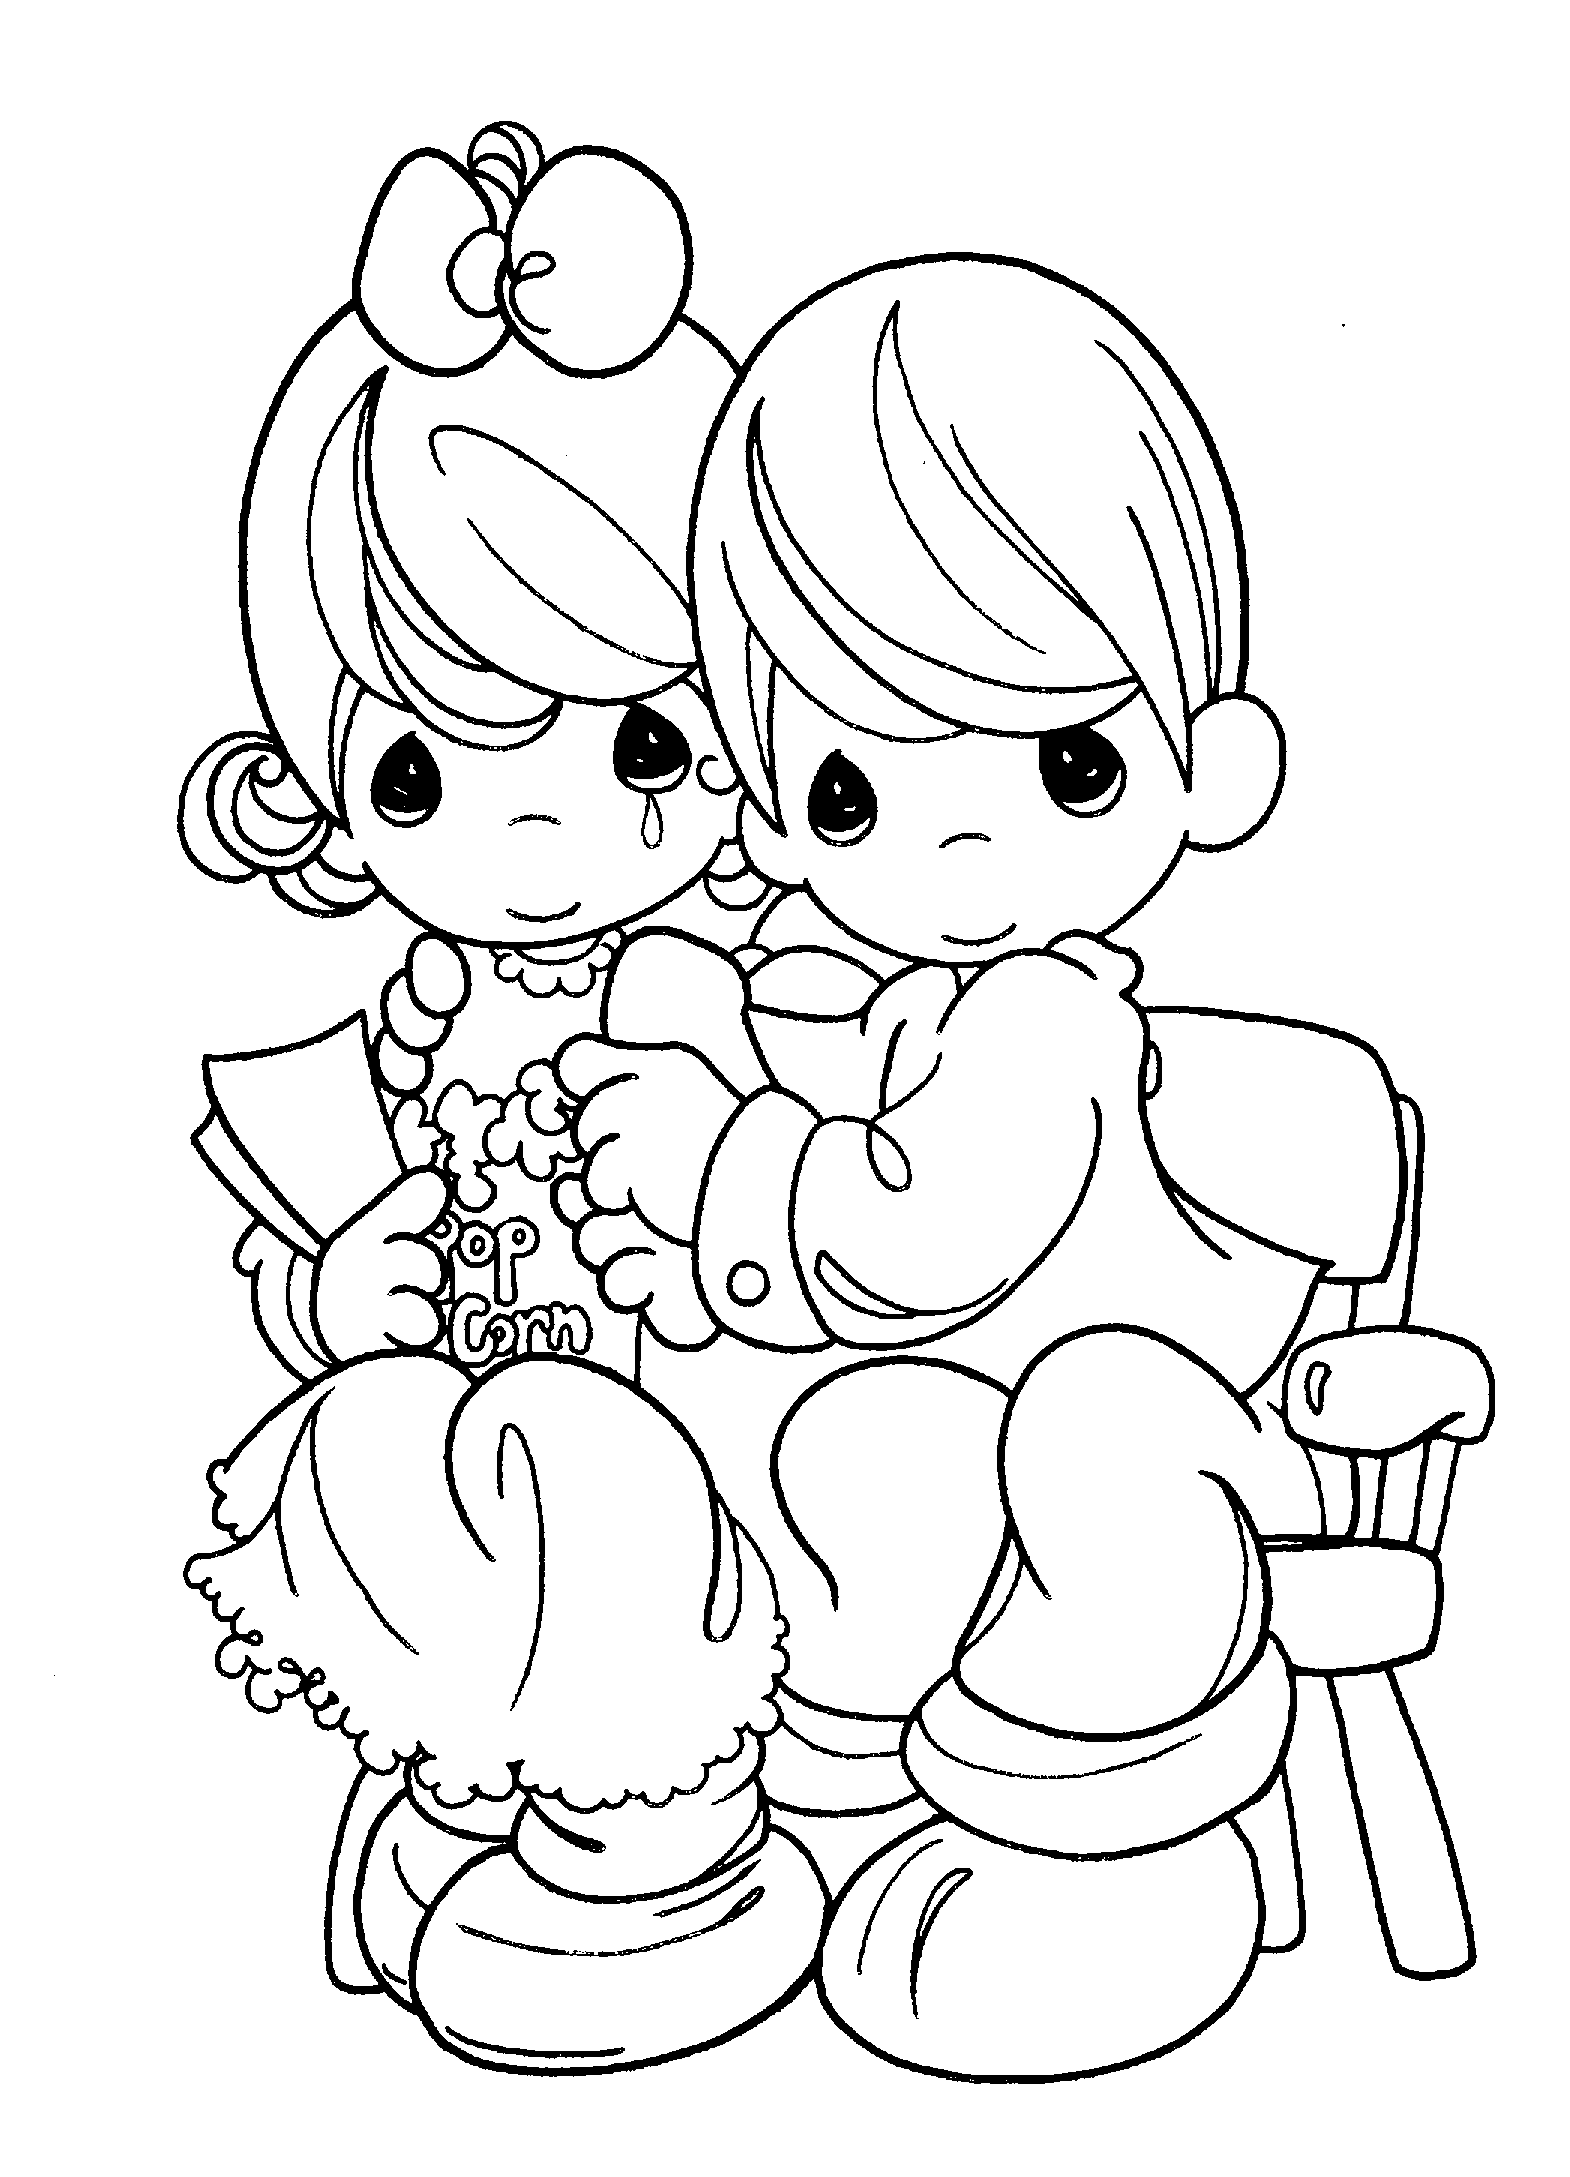 Adult Beauty Free Printable Precious Moments Coloring Pages Images top precious moments free coloring pages az page on love nativity gallery images